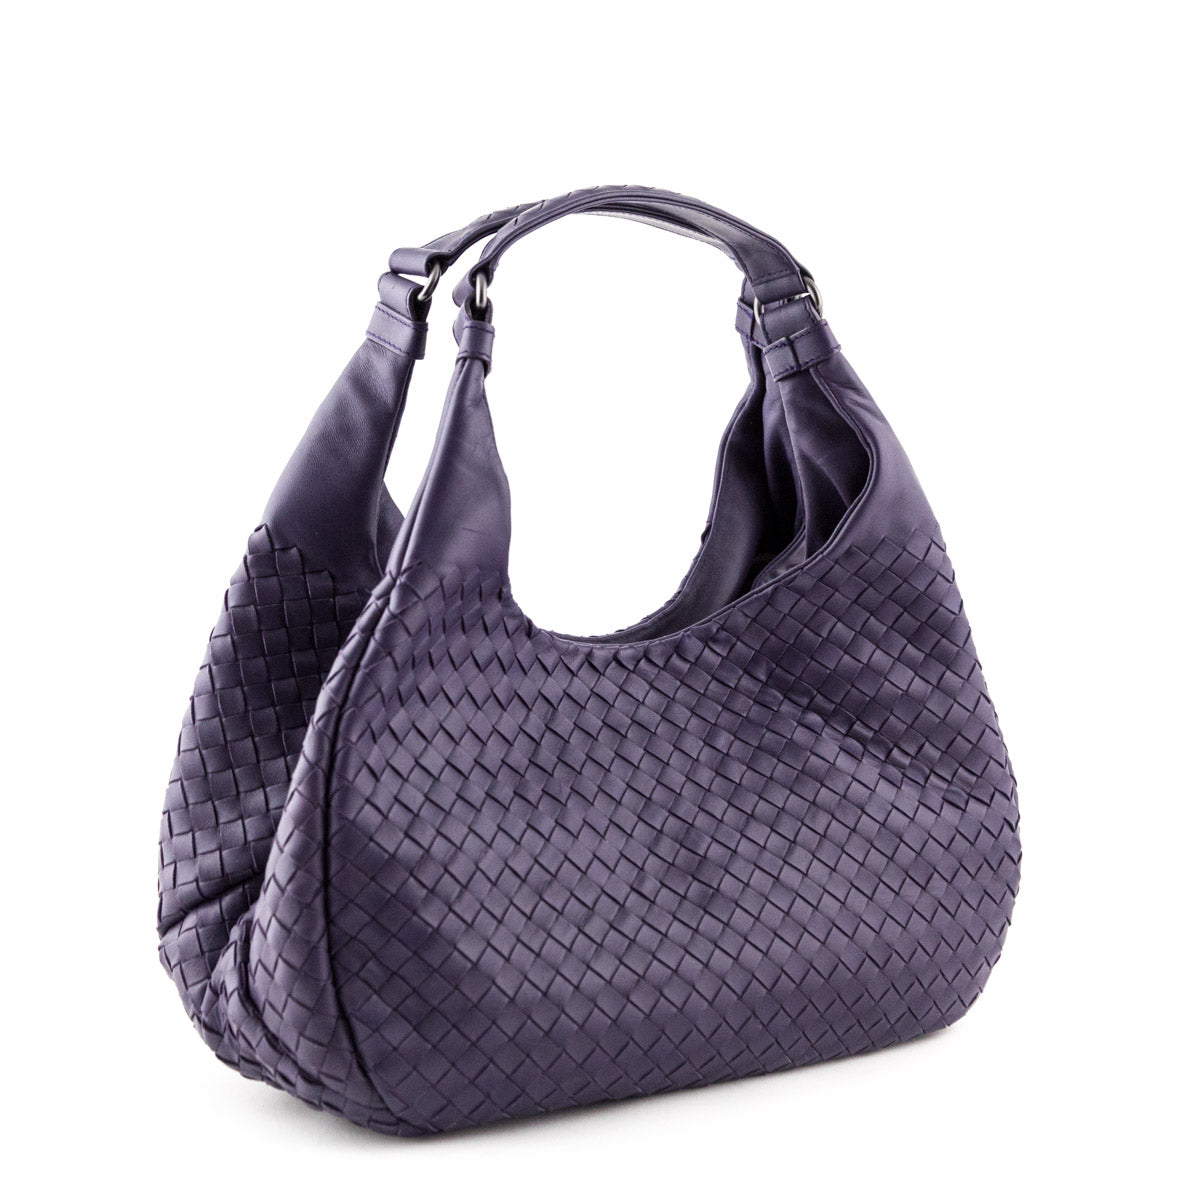 7ee99f8d31 ... Bottega Veneta Plum Intrecciato Napa Medium Campana Bag - LOVE that BAG  - Preowned Authentic Designer ...